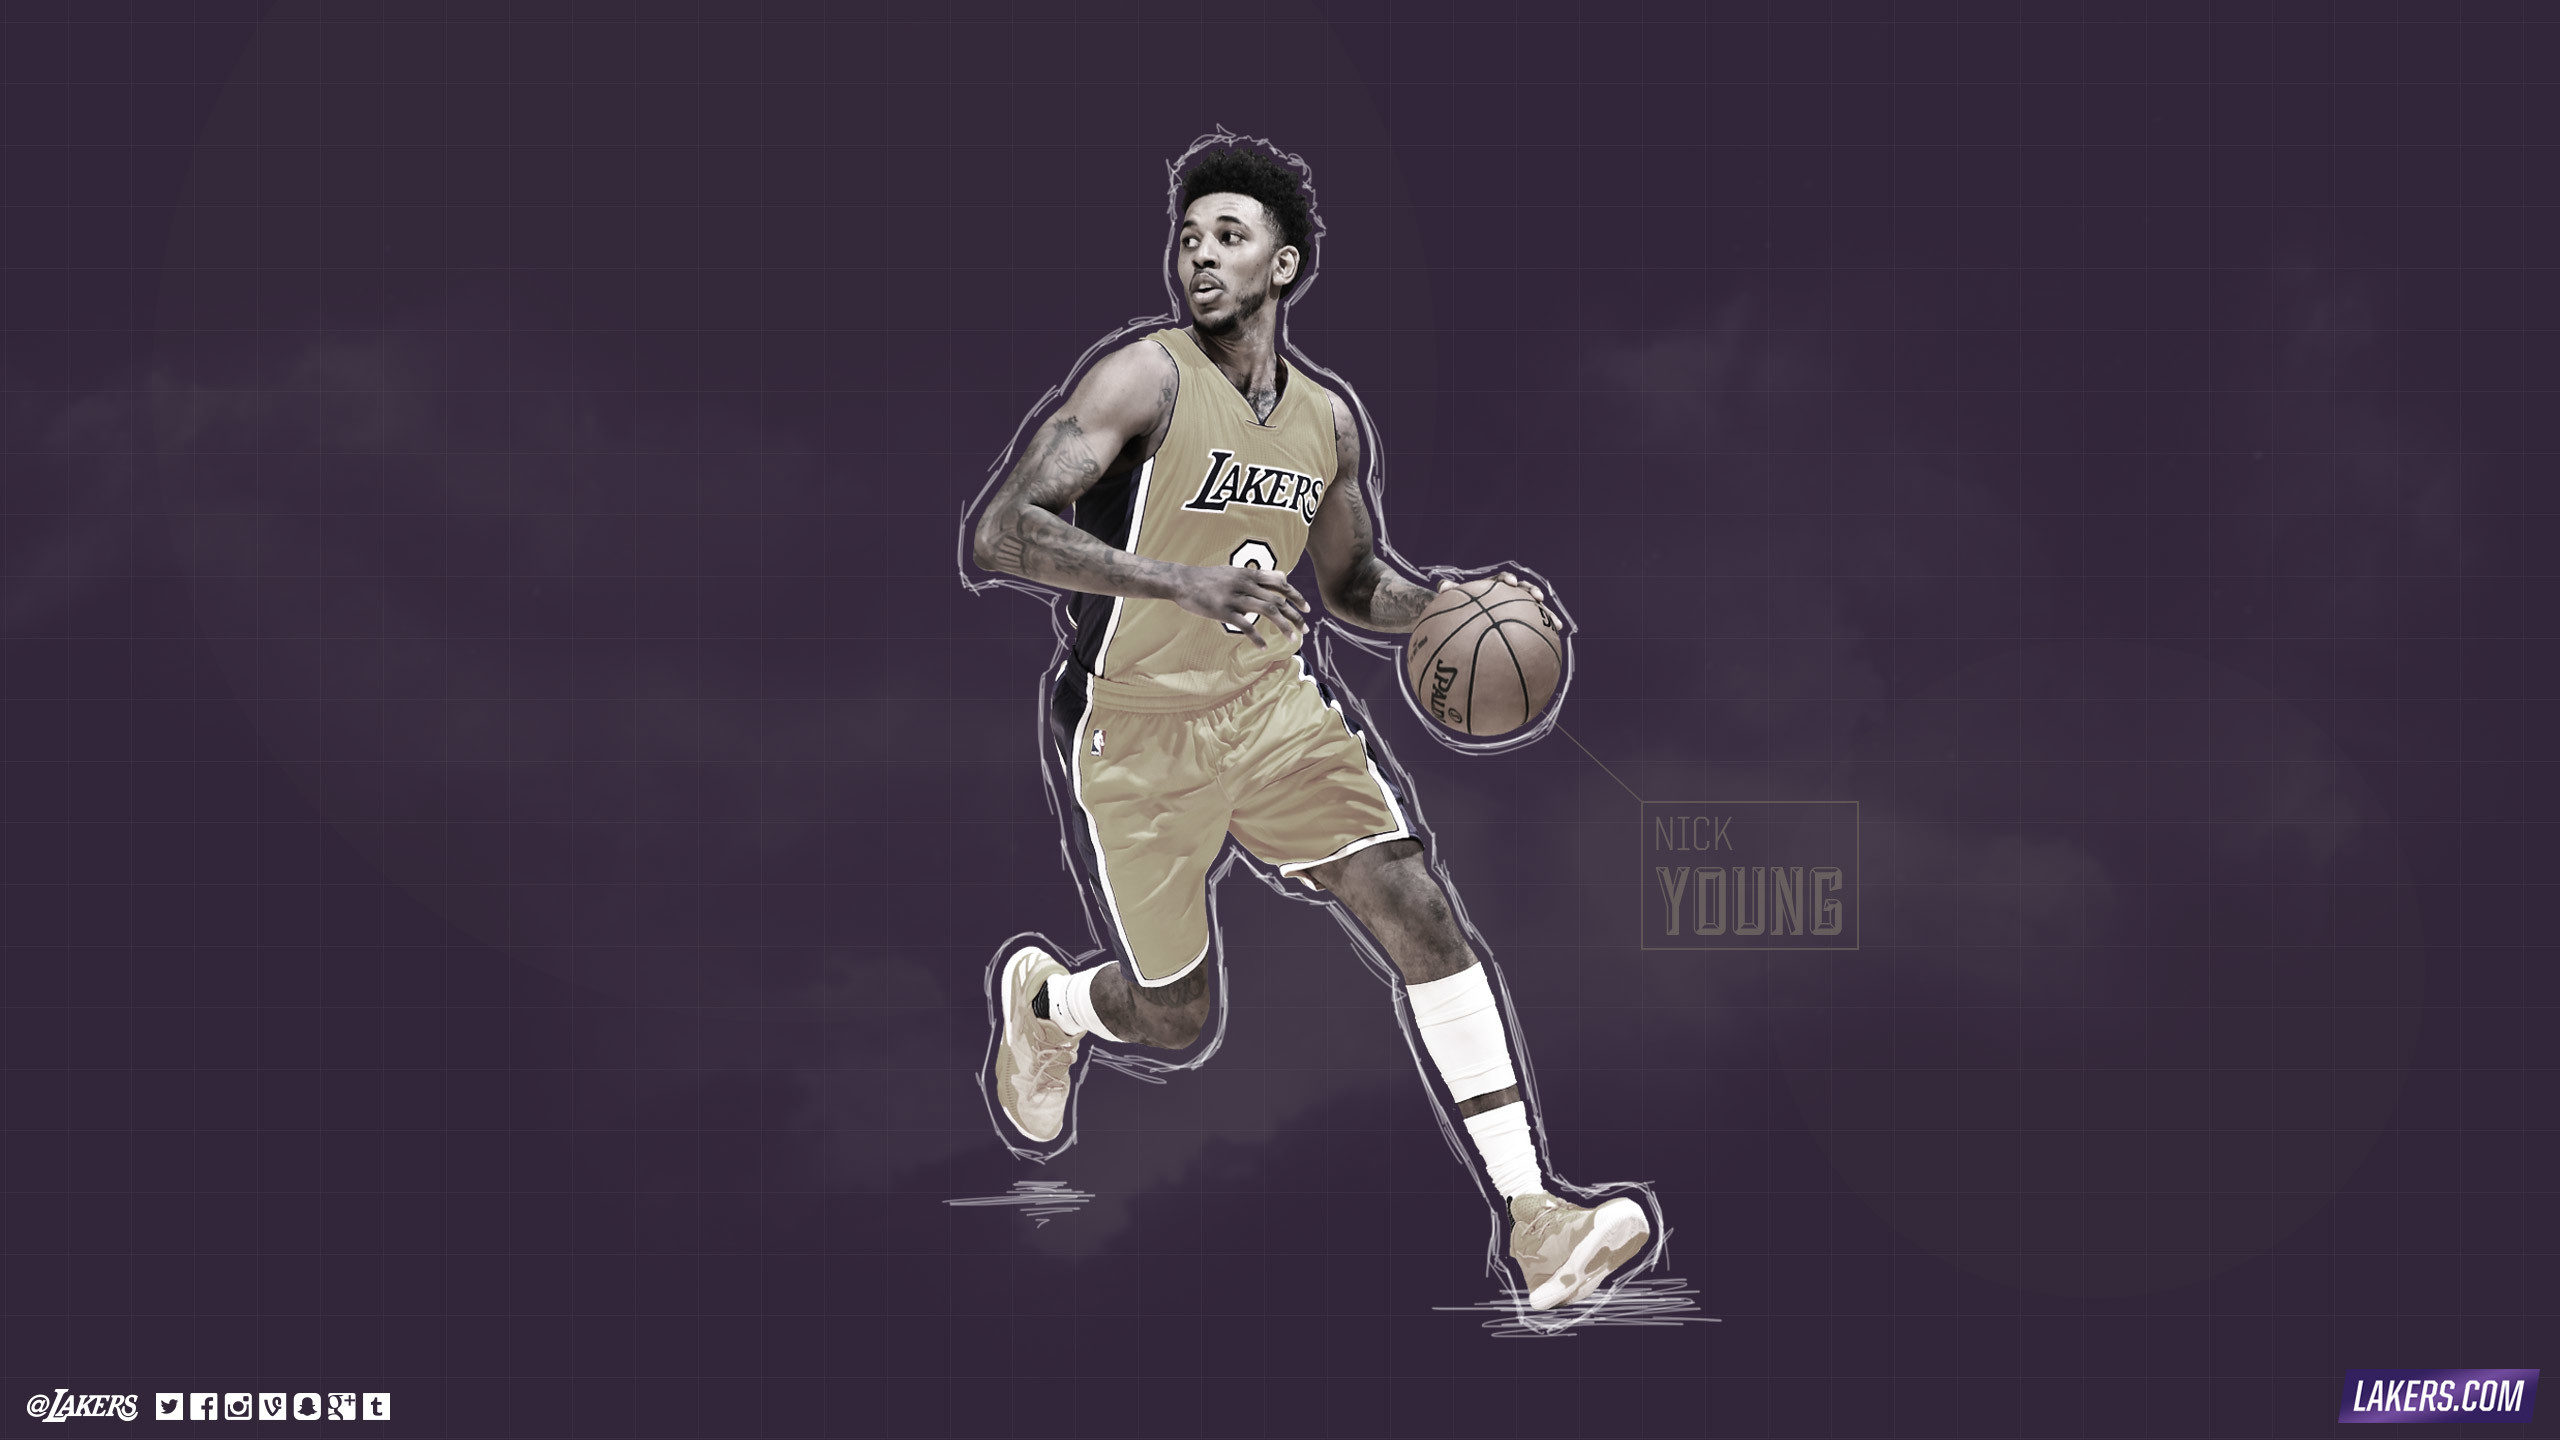 Nick Young Player Wallpaper. Nick Young